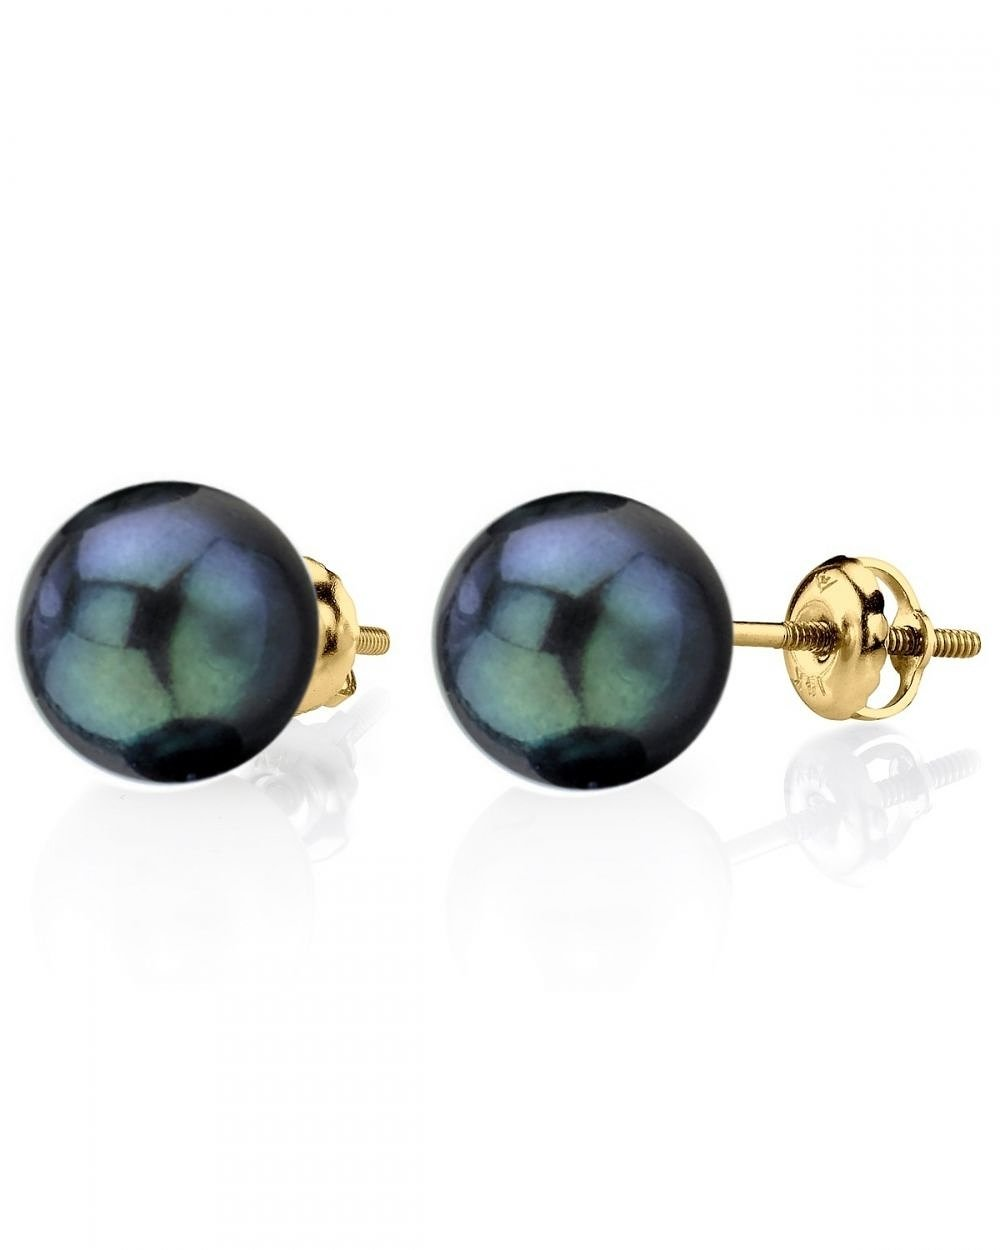 14K Gold Screwback 8.0-8.5mm Black Akoya Cultured Pearl Stud Earrings - AAA Quality